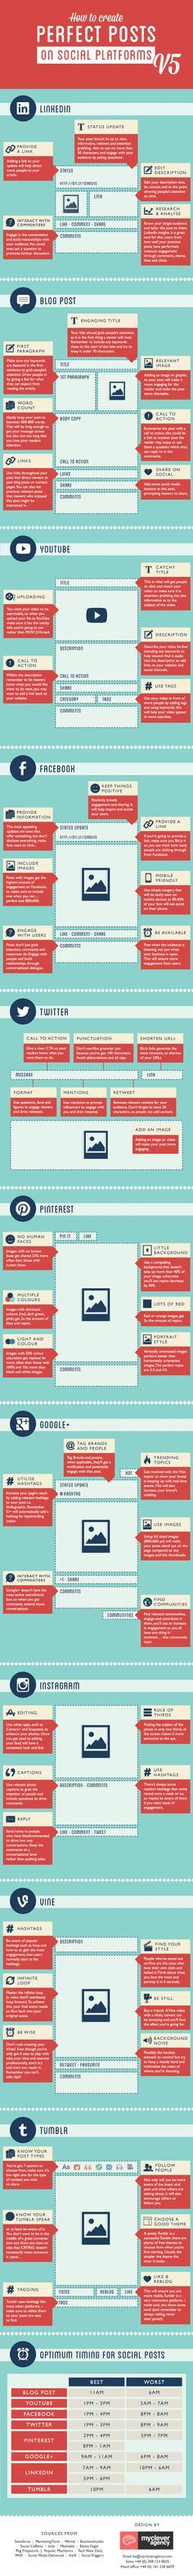 373 best SOCIAL MEDIA MARKETING images on Pinterest Social media - real estate marketing plan